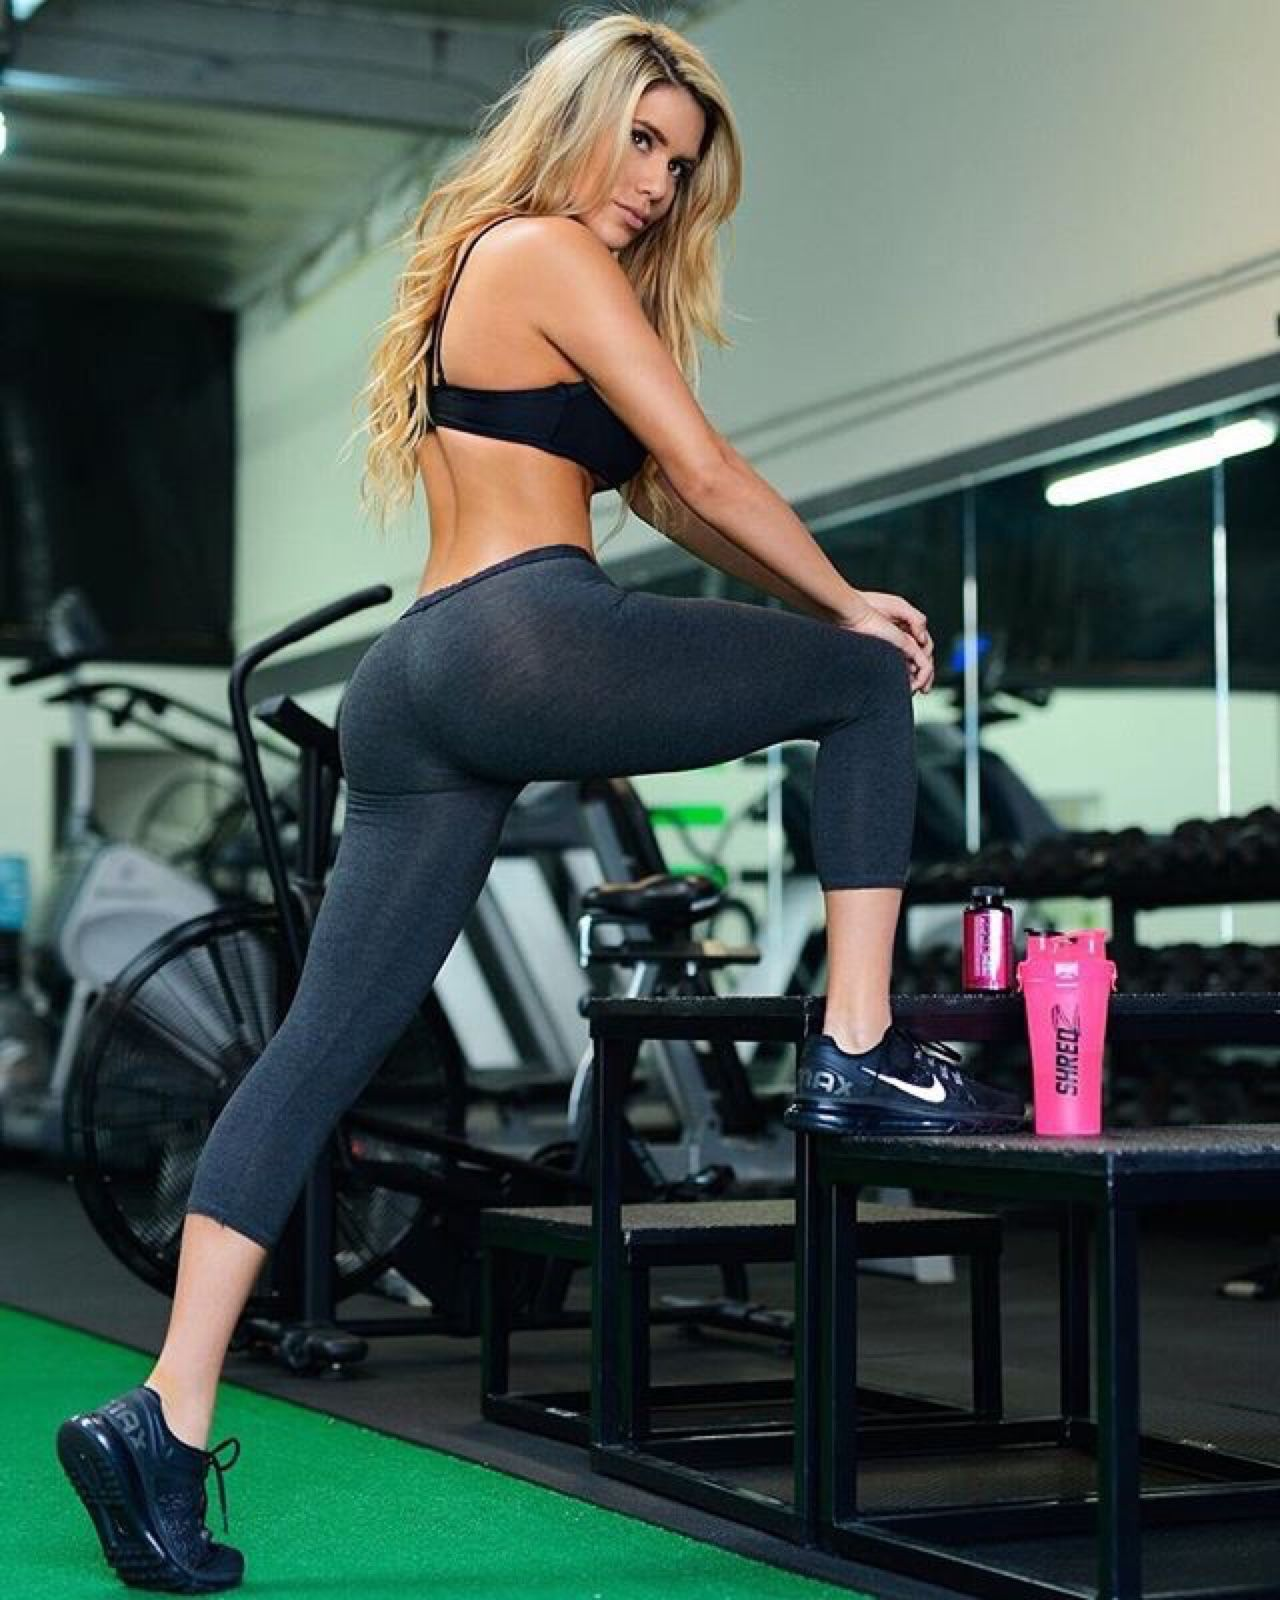 Pick up on this yoga pants wearing bigtime mega chick that we know you will get down with!!!!